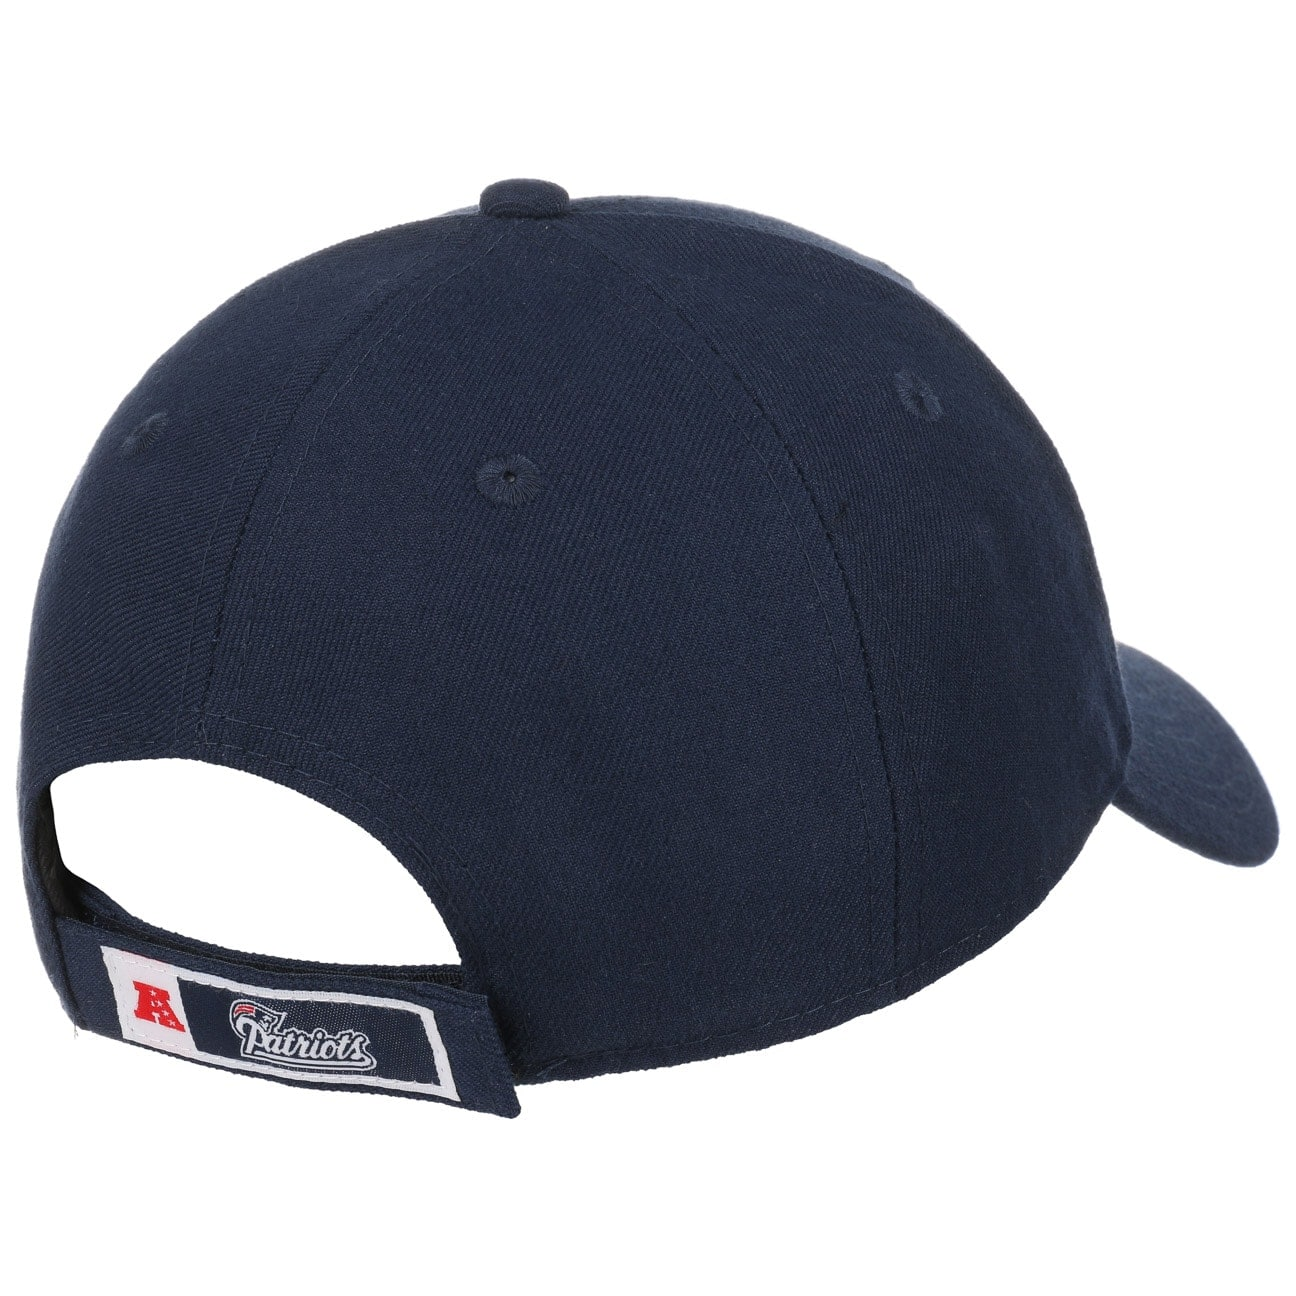 67c2fc0f4 ... navy blue 78b51 c8ac6  new style 9forty new england patriots cap by new  era 3 136e1 0036b